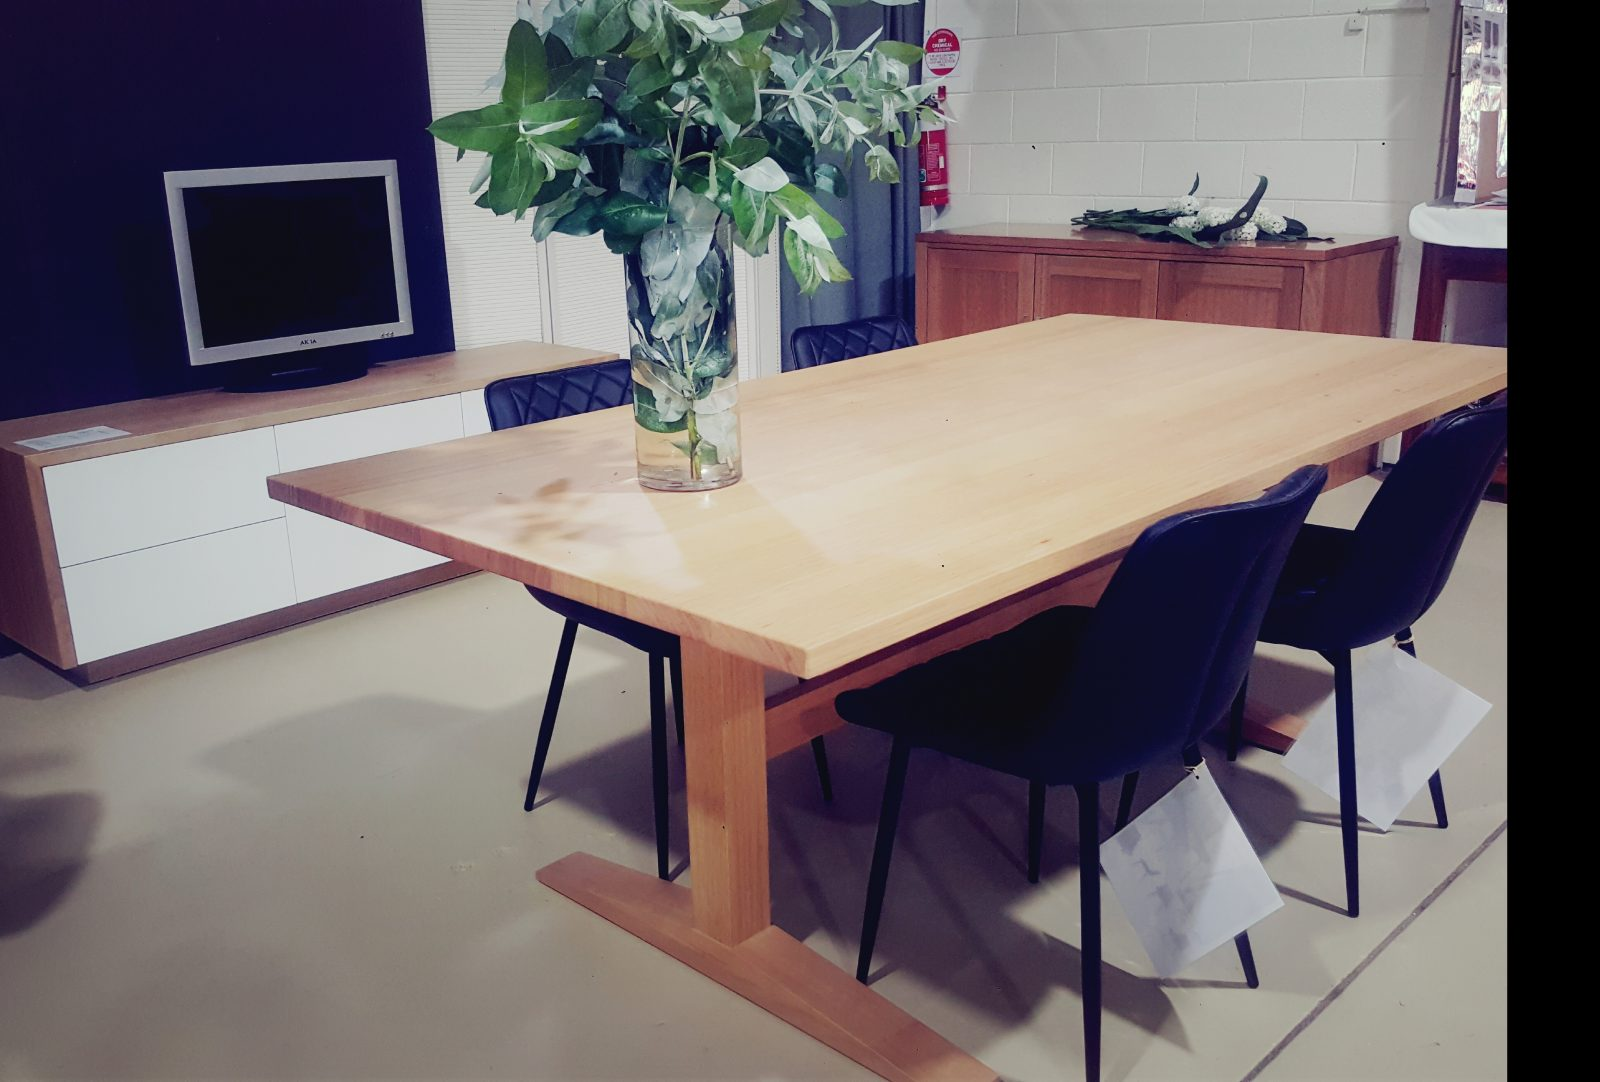 Athelstone Dining table Image